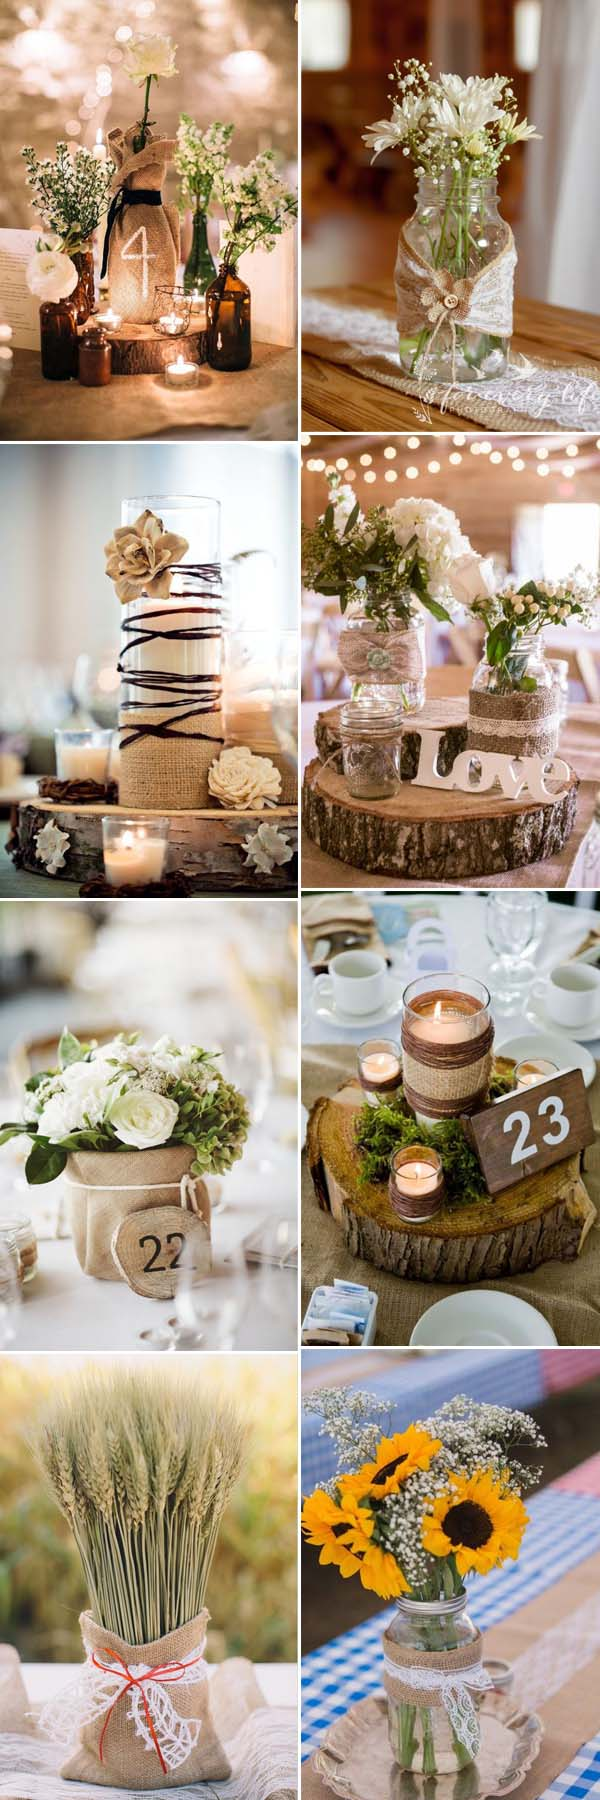 Diy wedding table decorations ideas  Robin Goggin robing on Pinterest